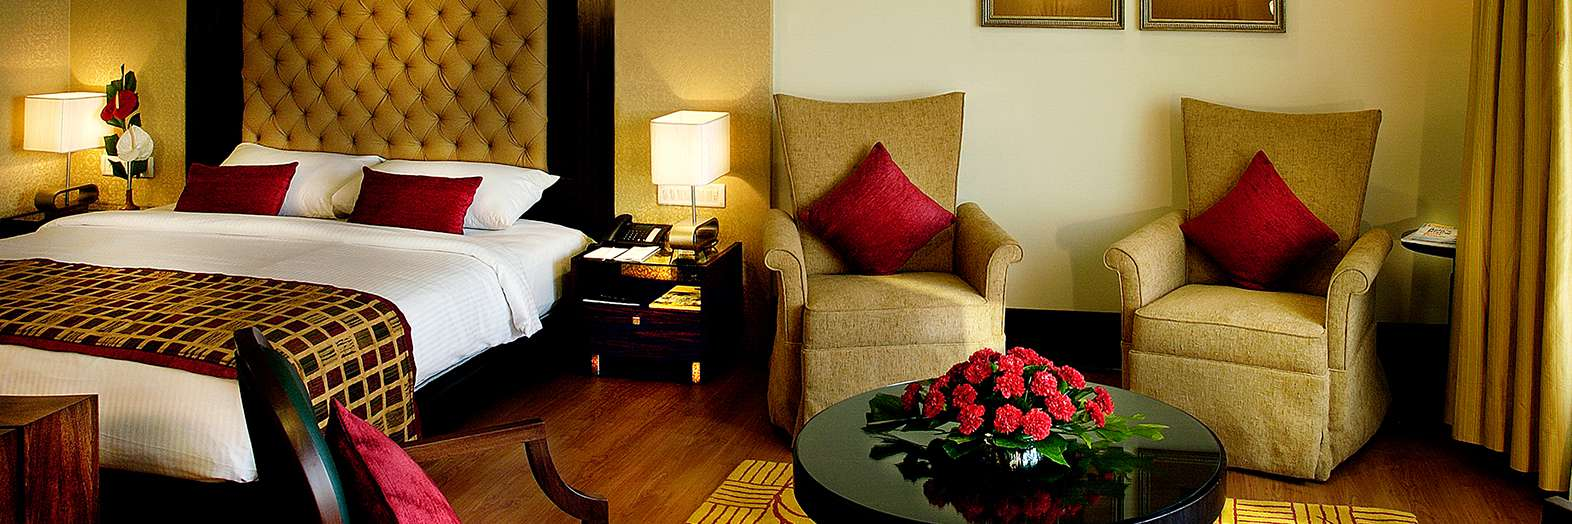 Hotel offers in Indore